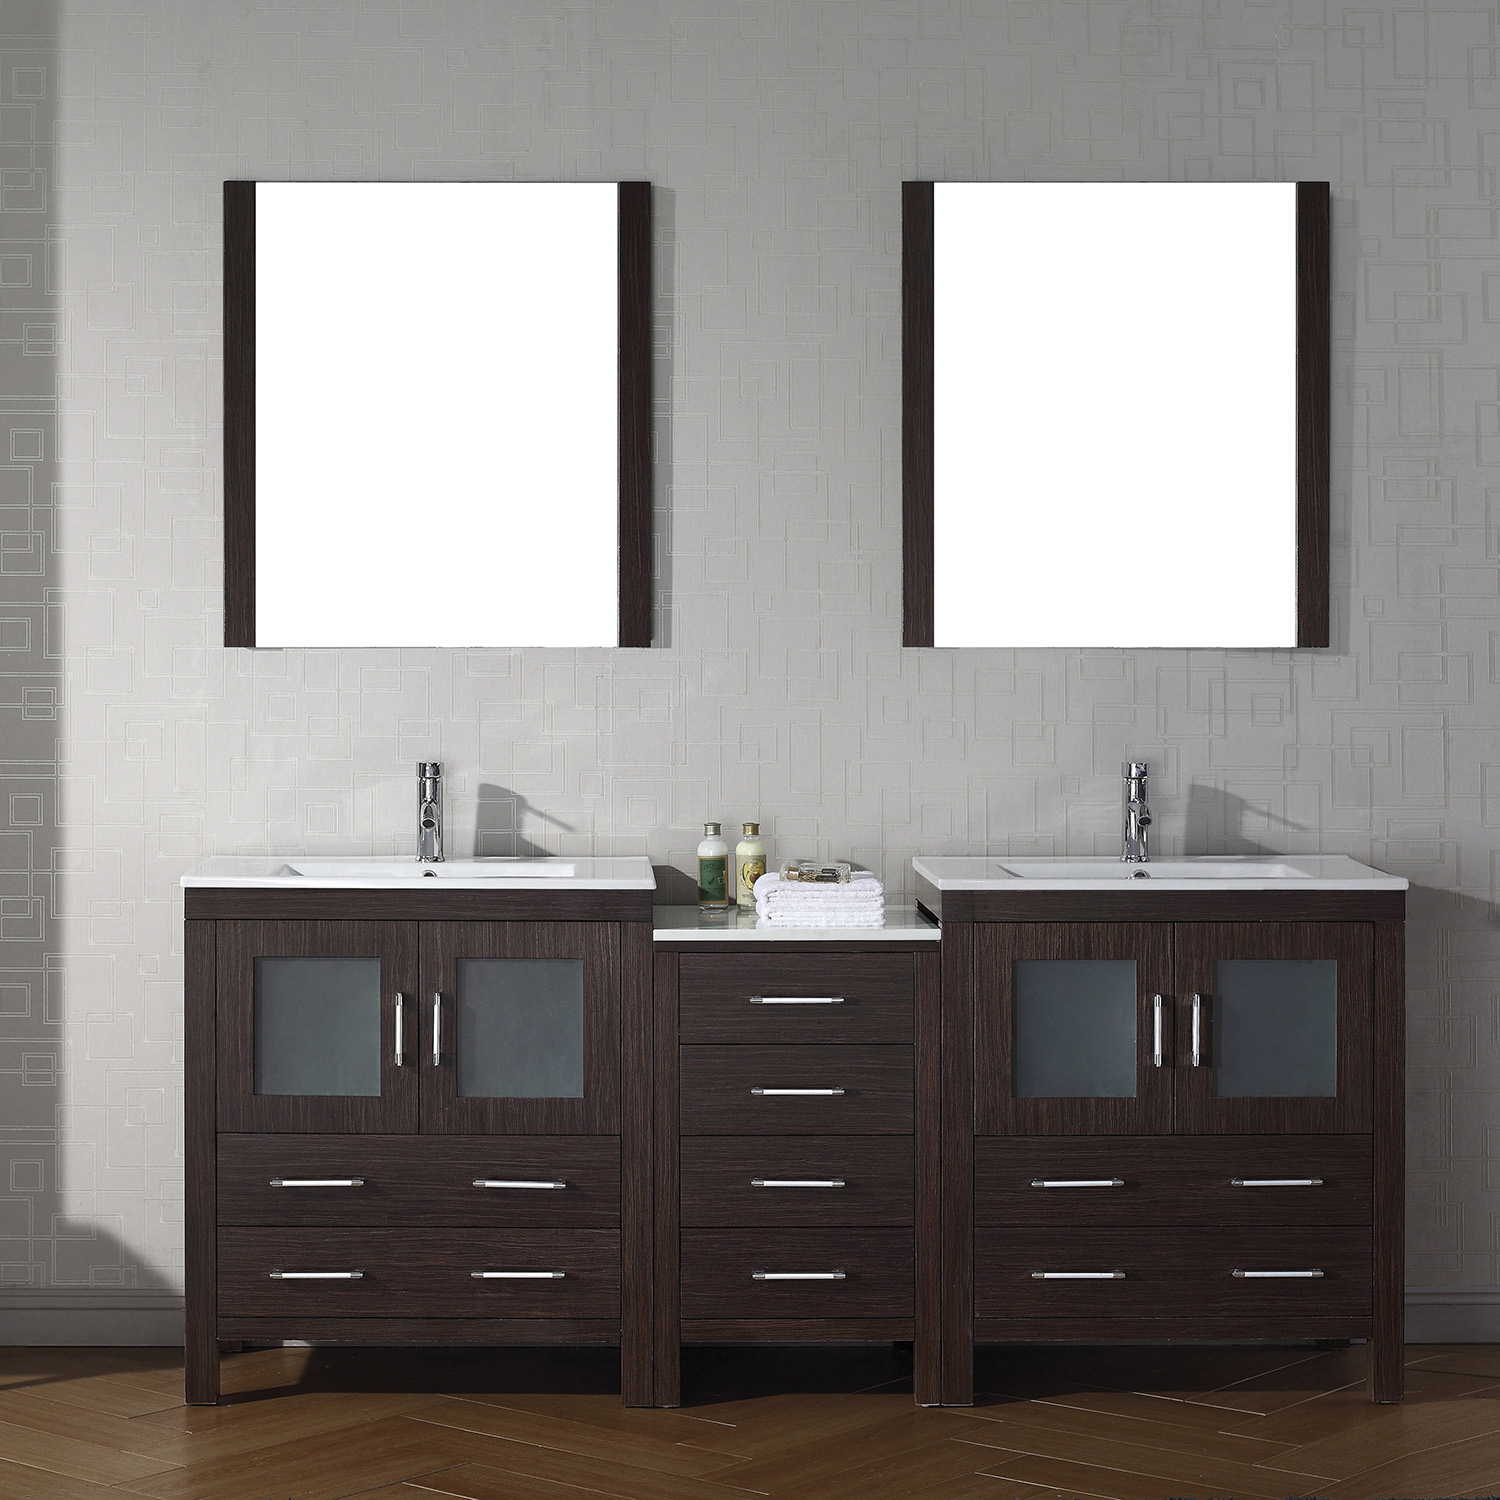 "78"" Double Bath Vanity in Espresso with Slim White Ceramic Top and Square Sink with Polished Chrome Faucet and Mirrors"